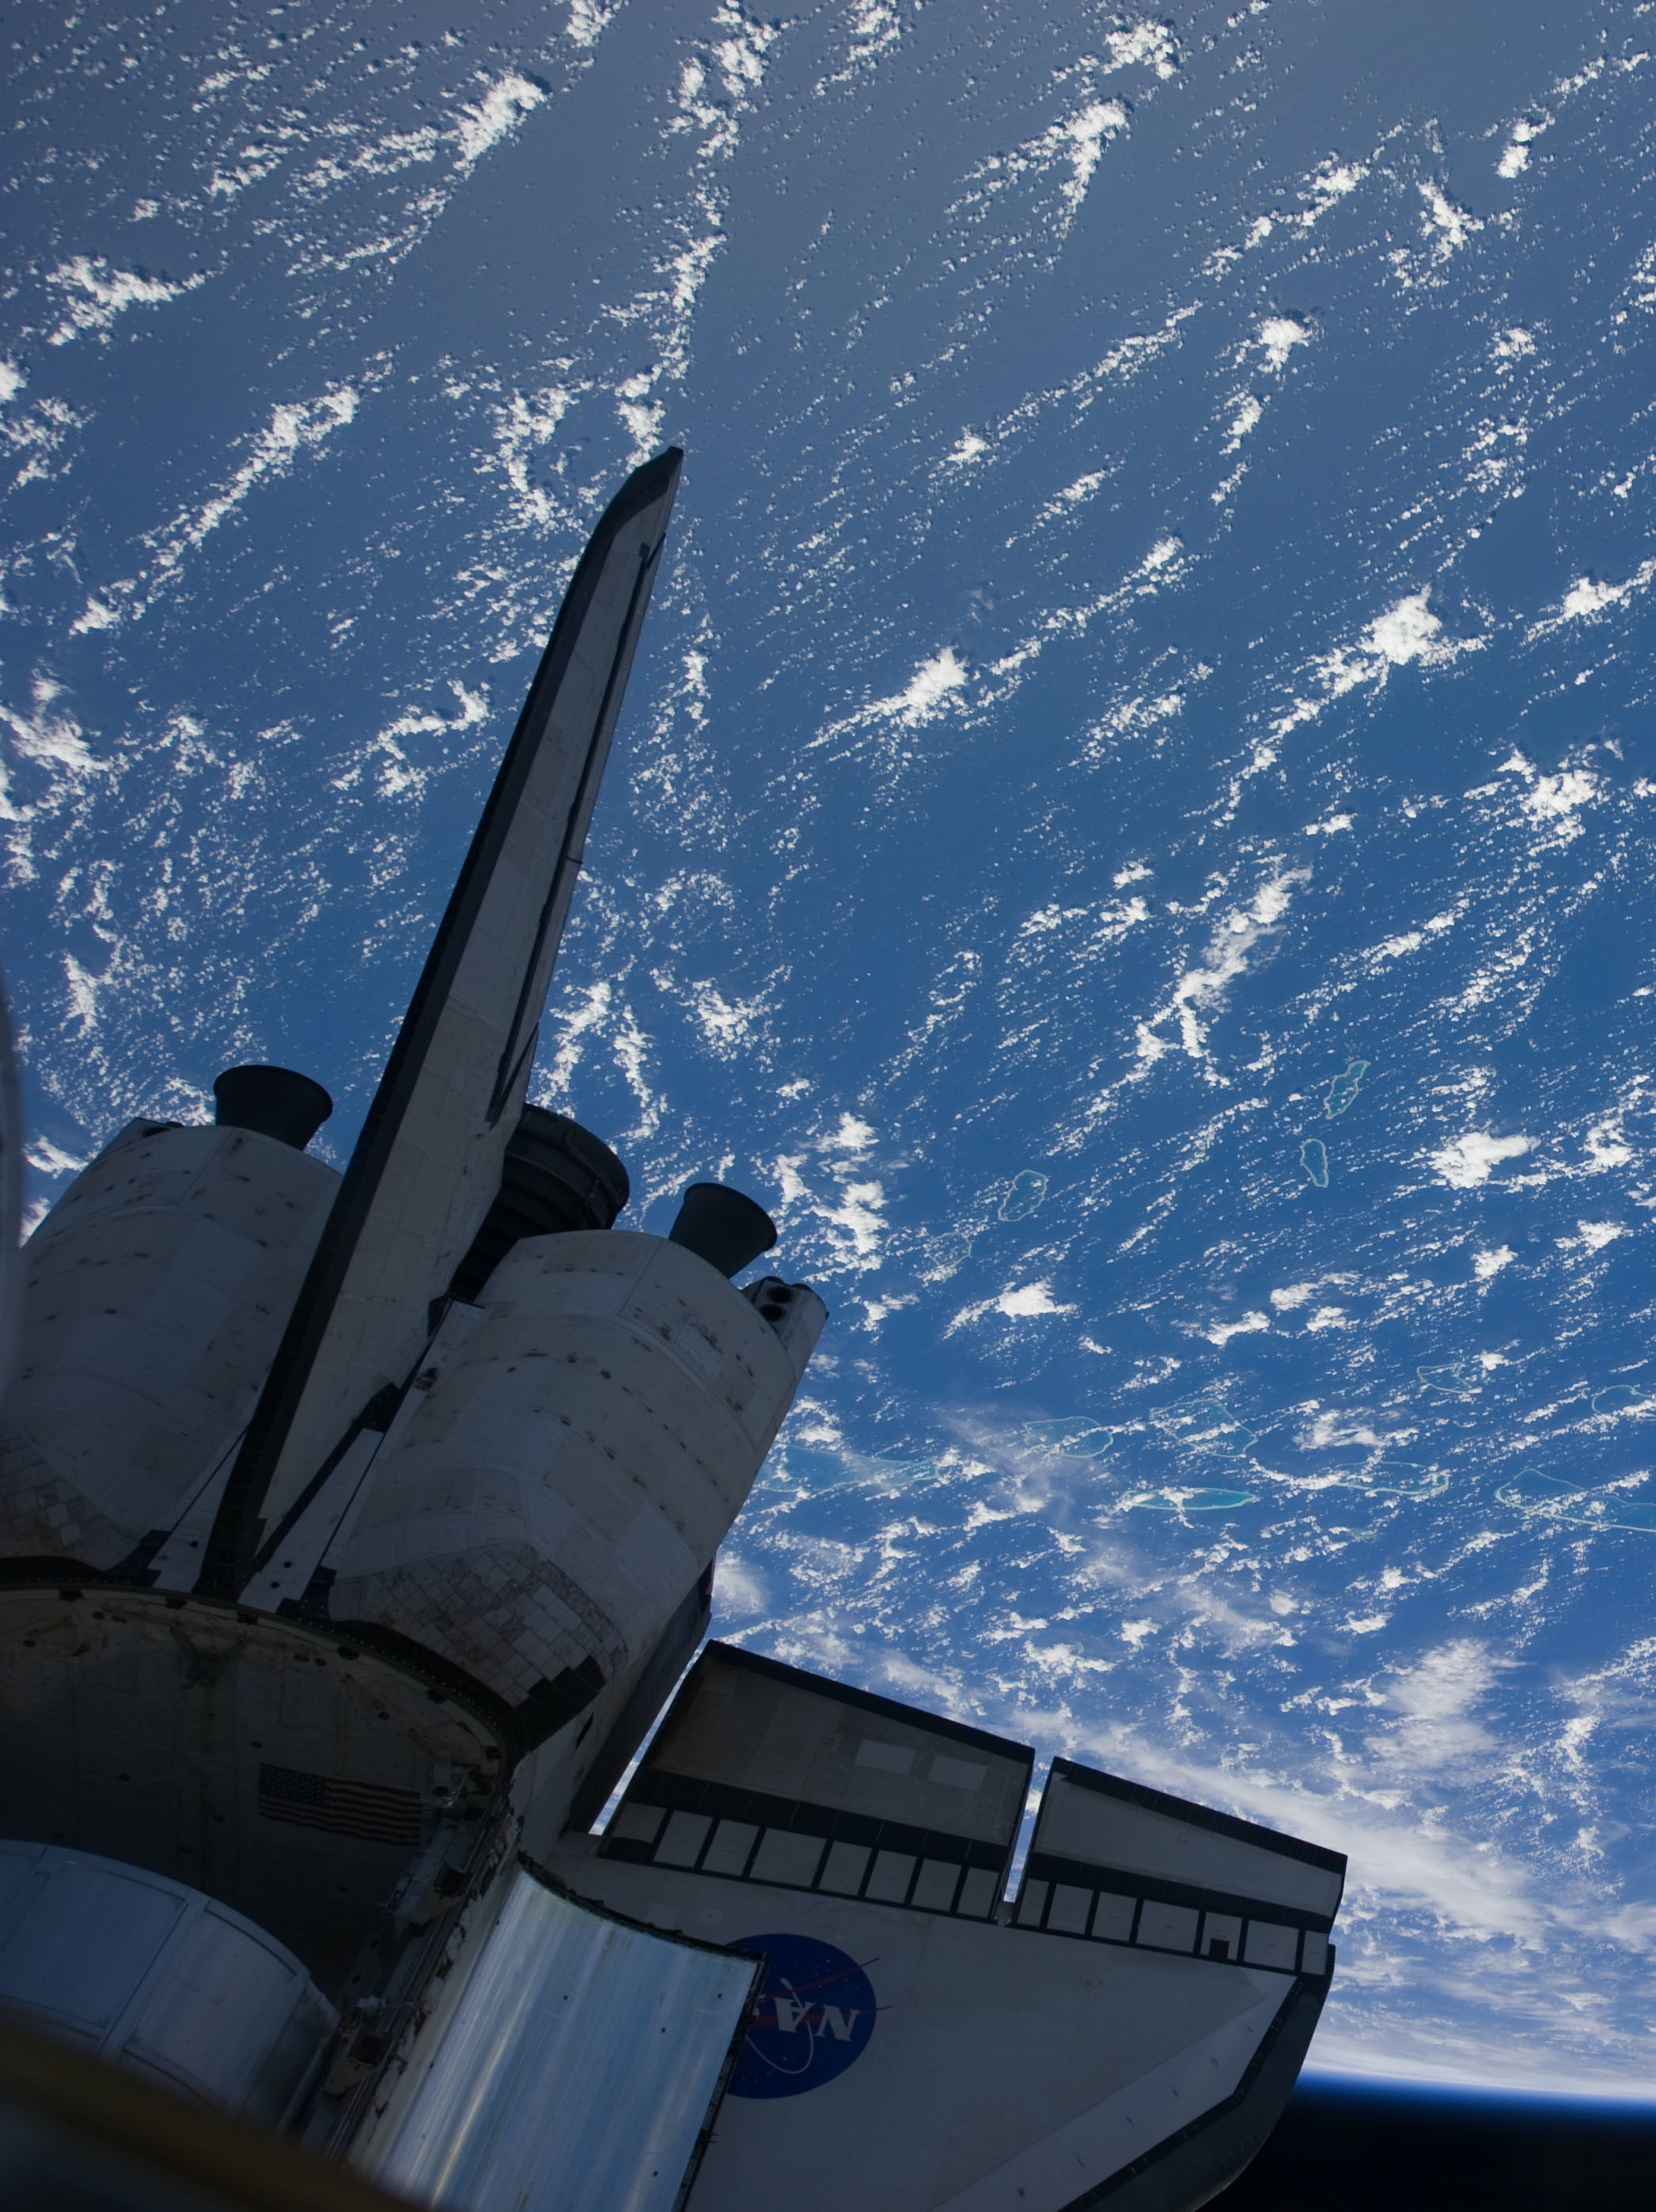 Space Shuttle Discovery Over Earth (NASA, International Space Station, 02/26/11)